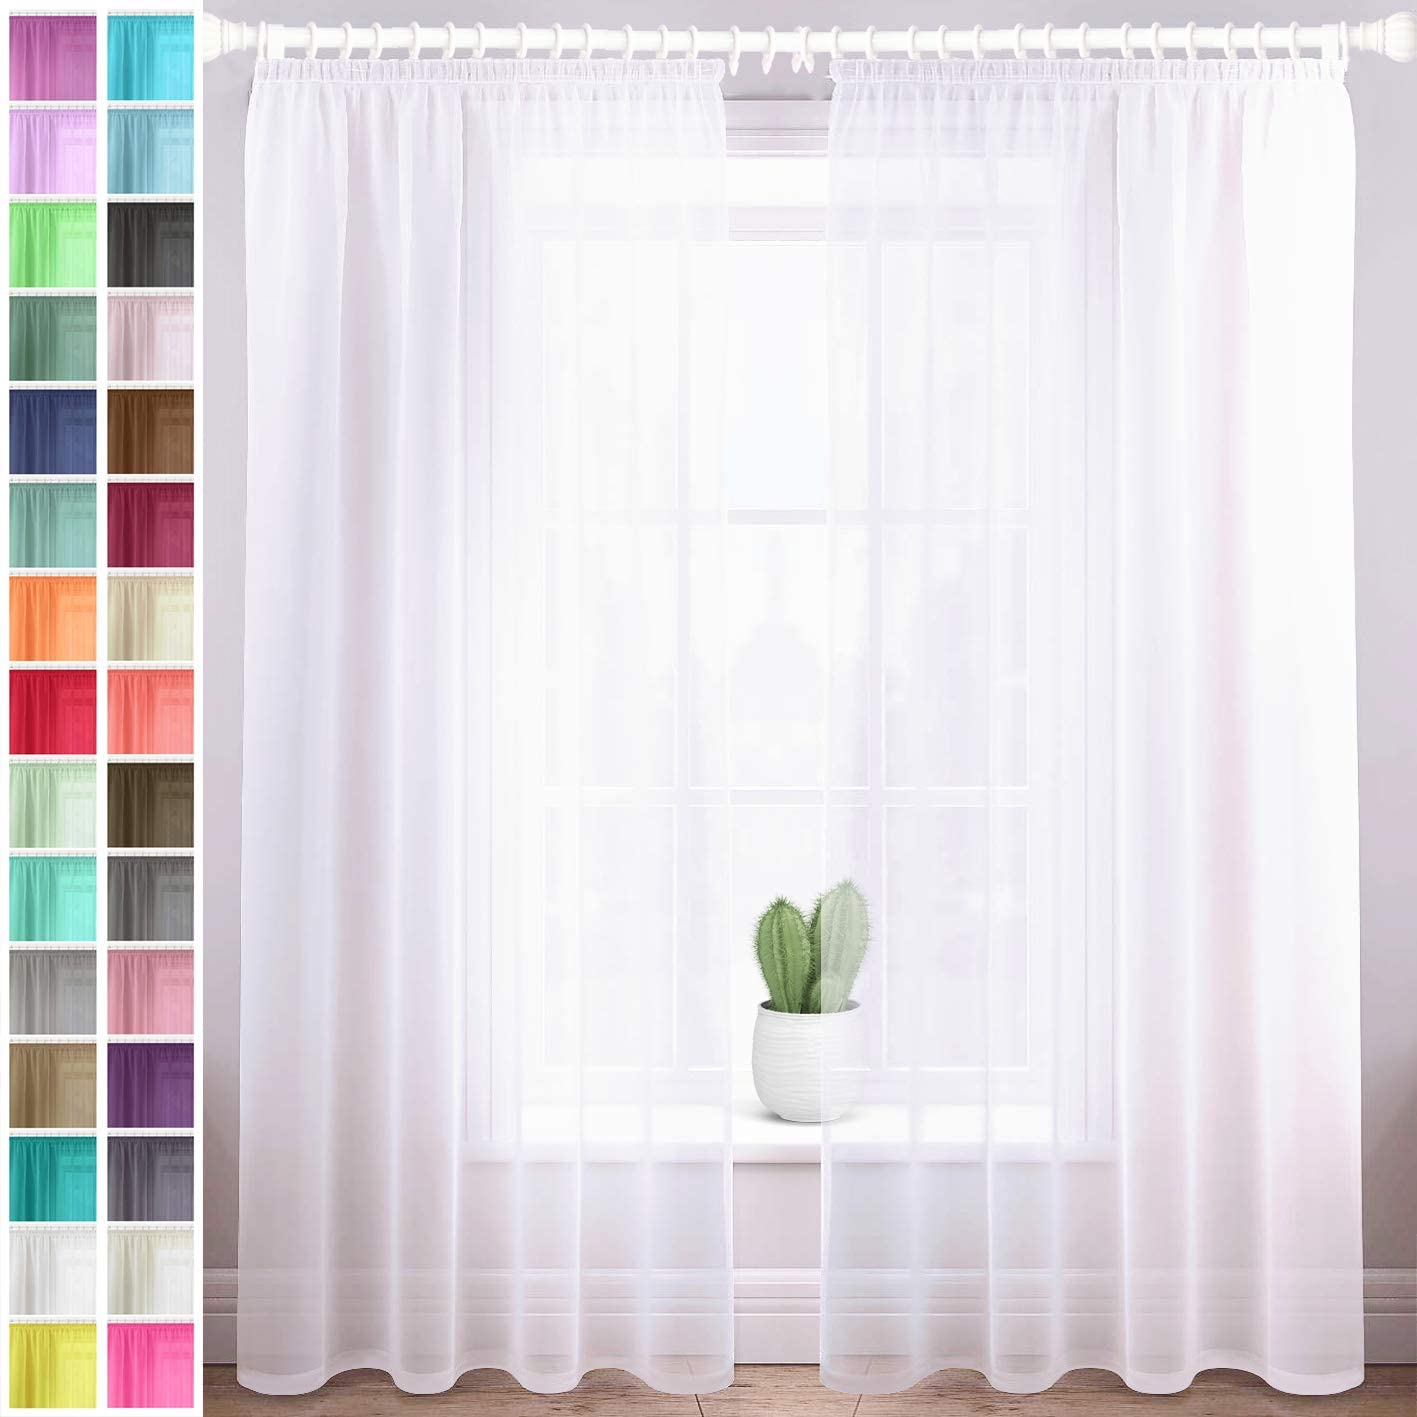 """Megachest lucy Woven Voile gathering tape Curtain 2 Panels with ties (28 colors) (pure white, 56"""" wideX90 drop(W142cmXH228.5cm)) Pure White 56""""wideX90""""drop(W142cmXH228.5cm)"""